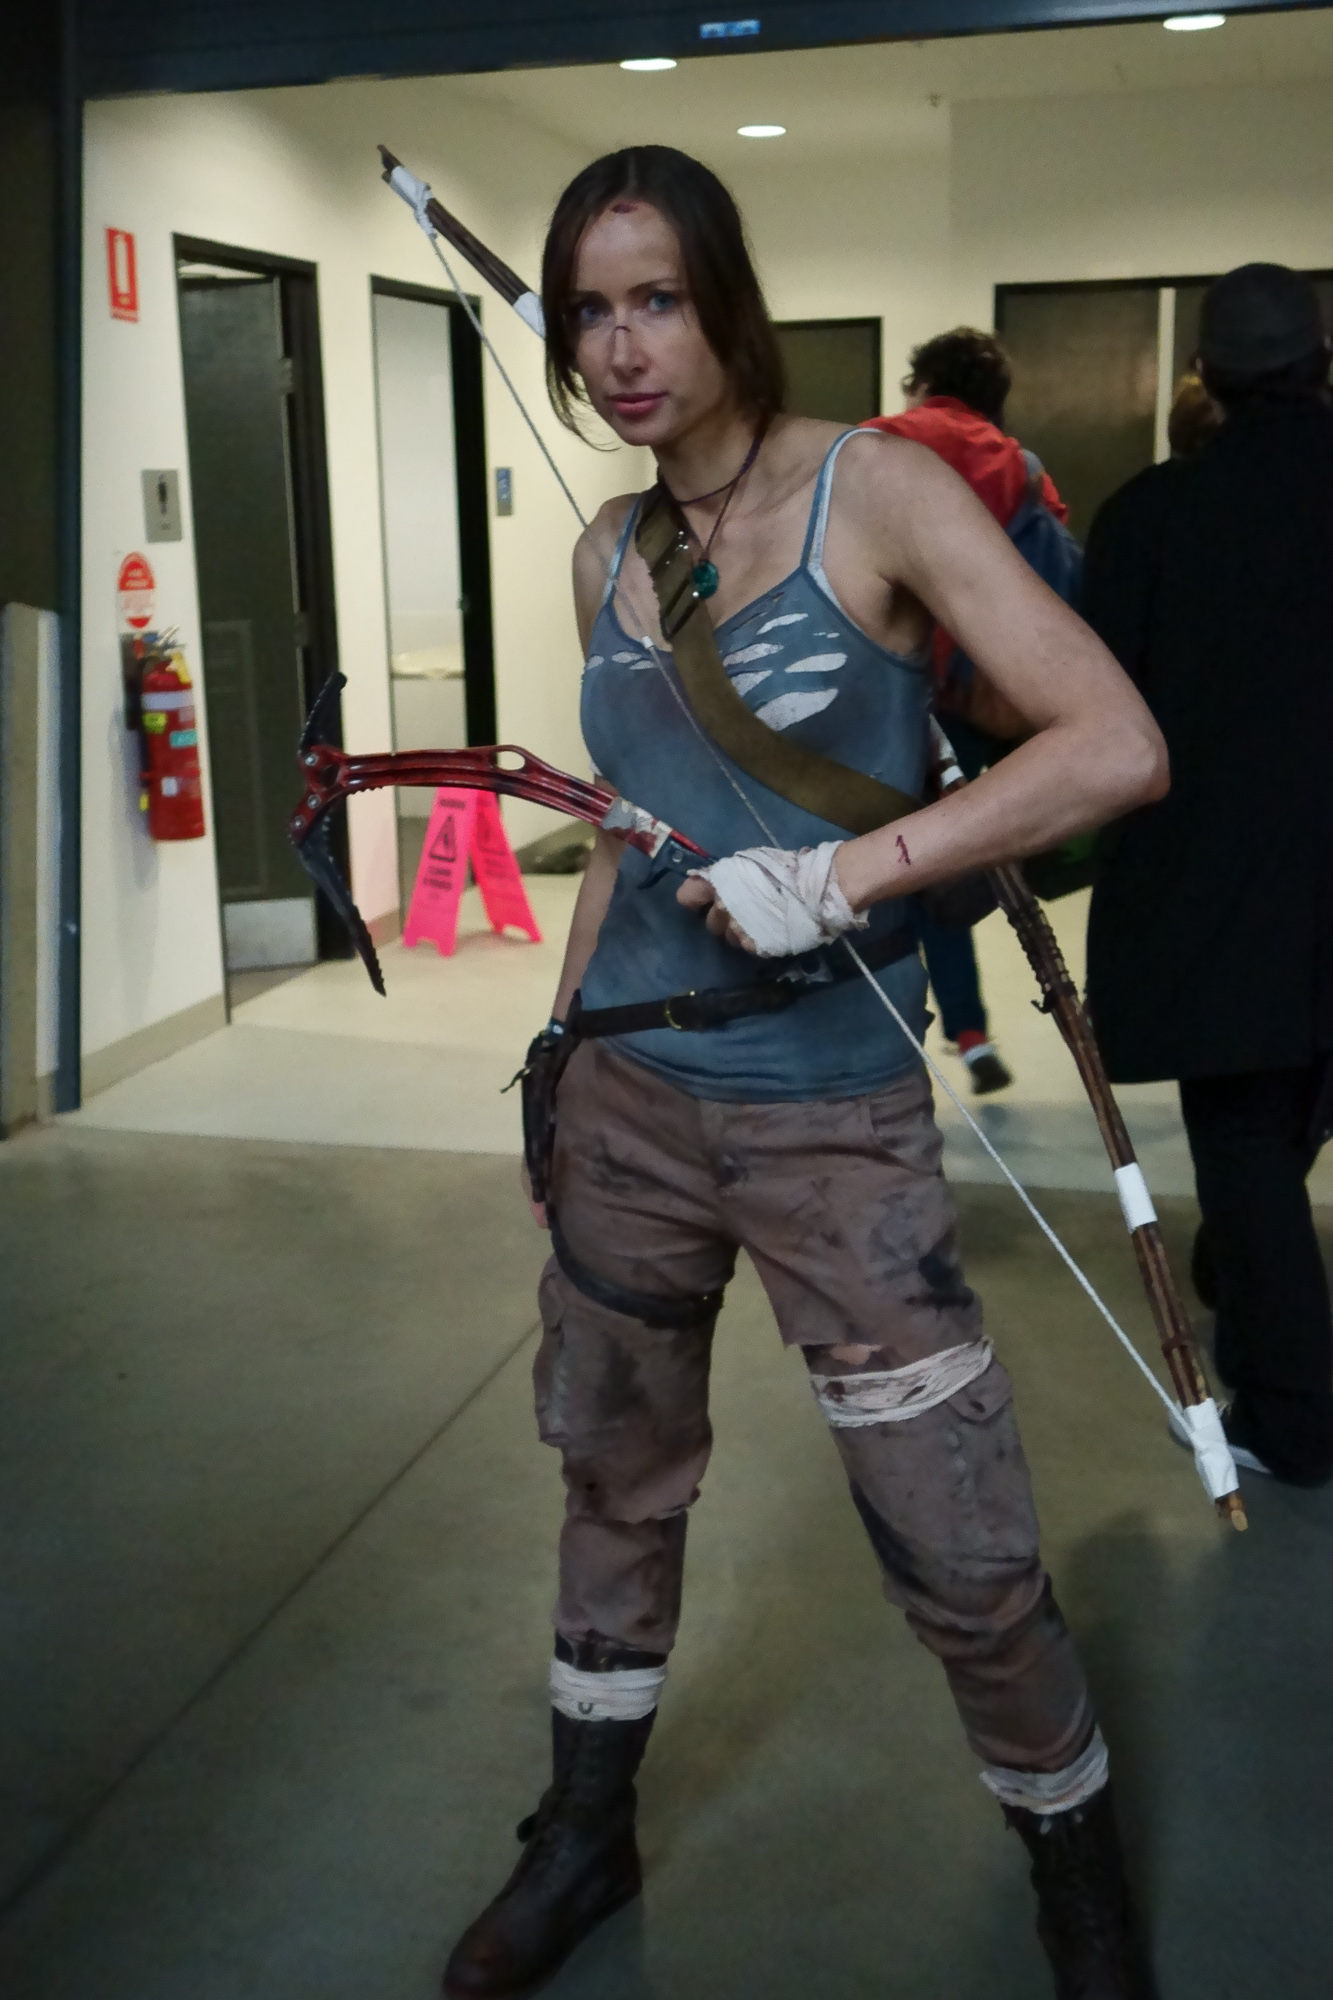 Lara Croft/Tomb Raider cosplay. The 2013 reboot, of course.